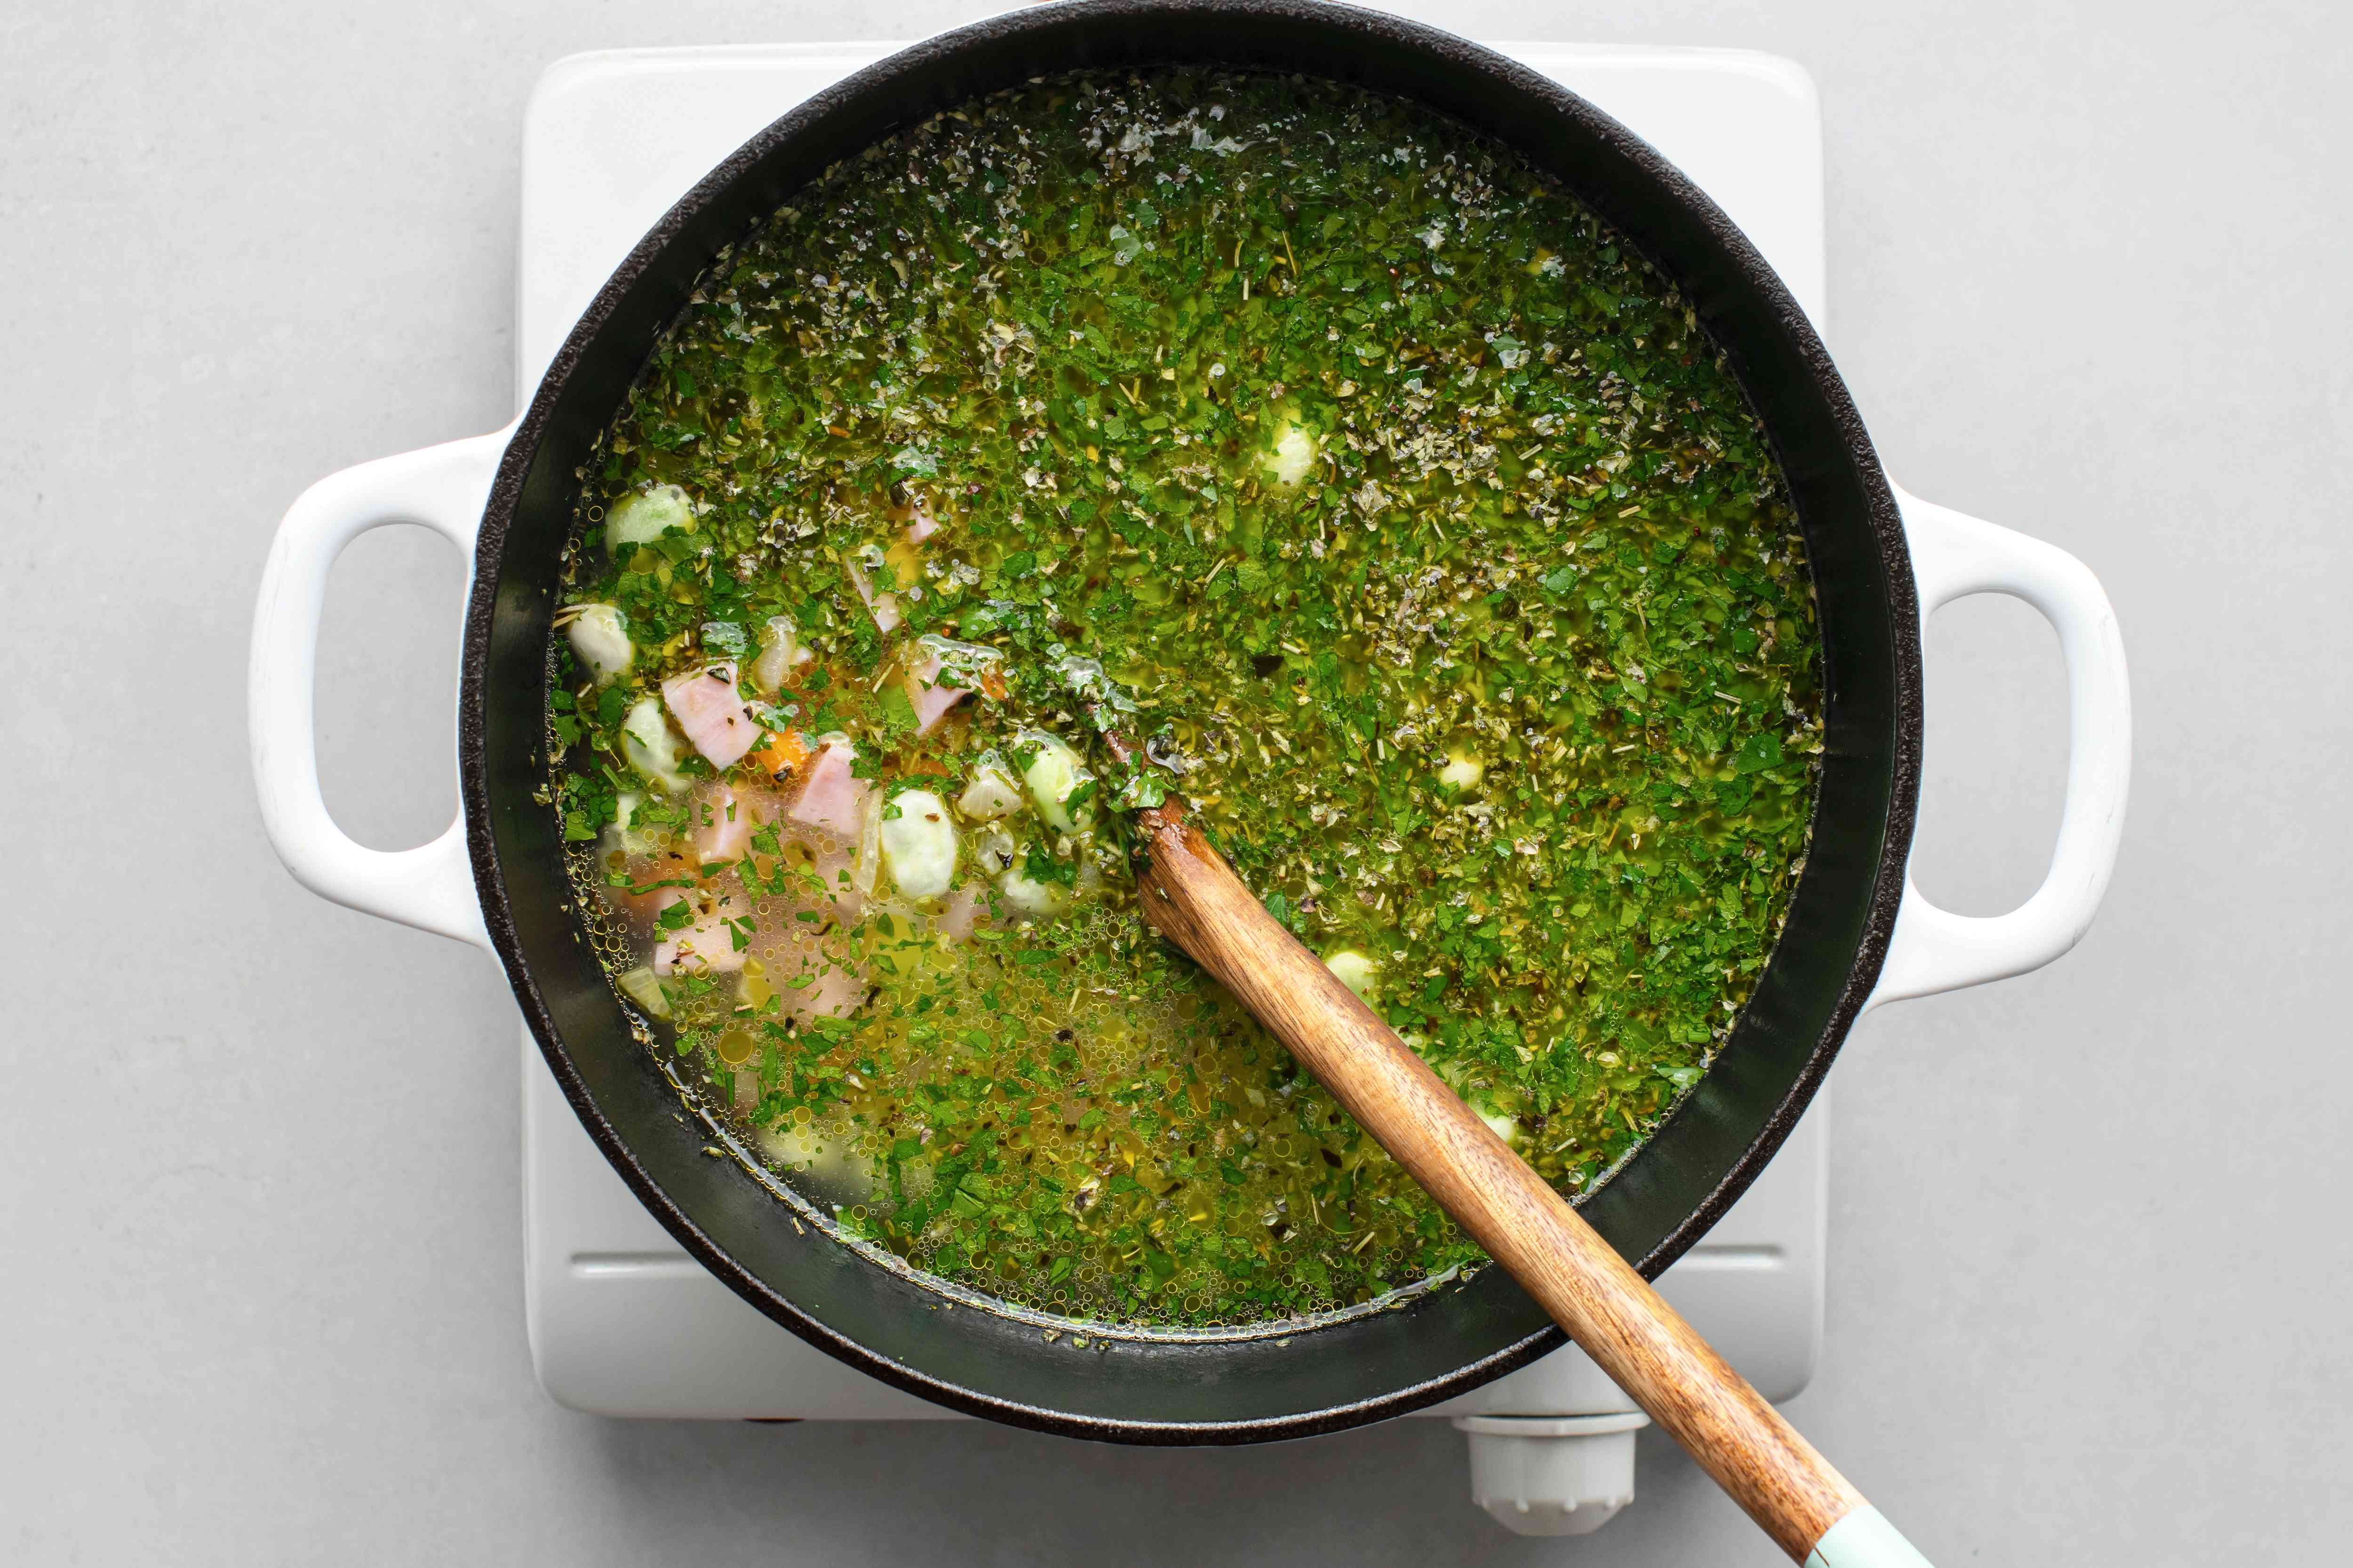 Add the ham, frozen lima beans, parsley, and marjoram to the vegetable mixture in the Dutch oven